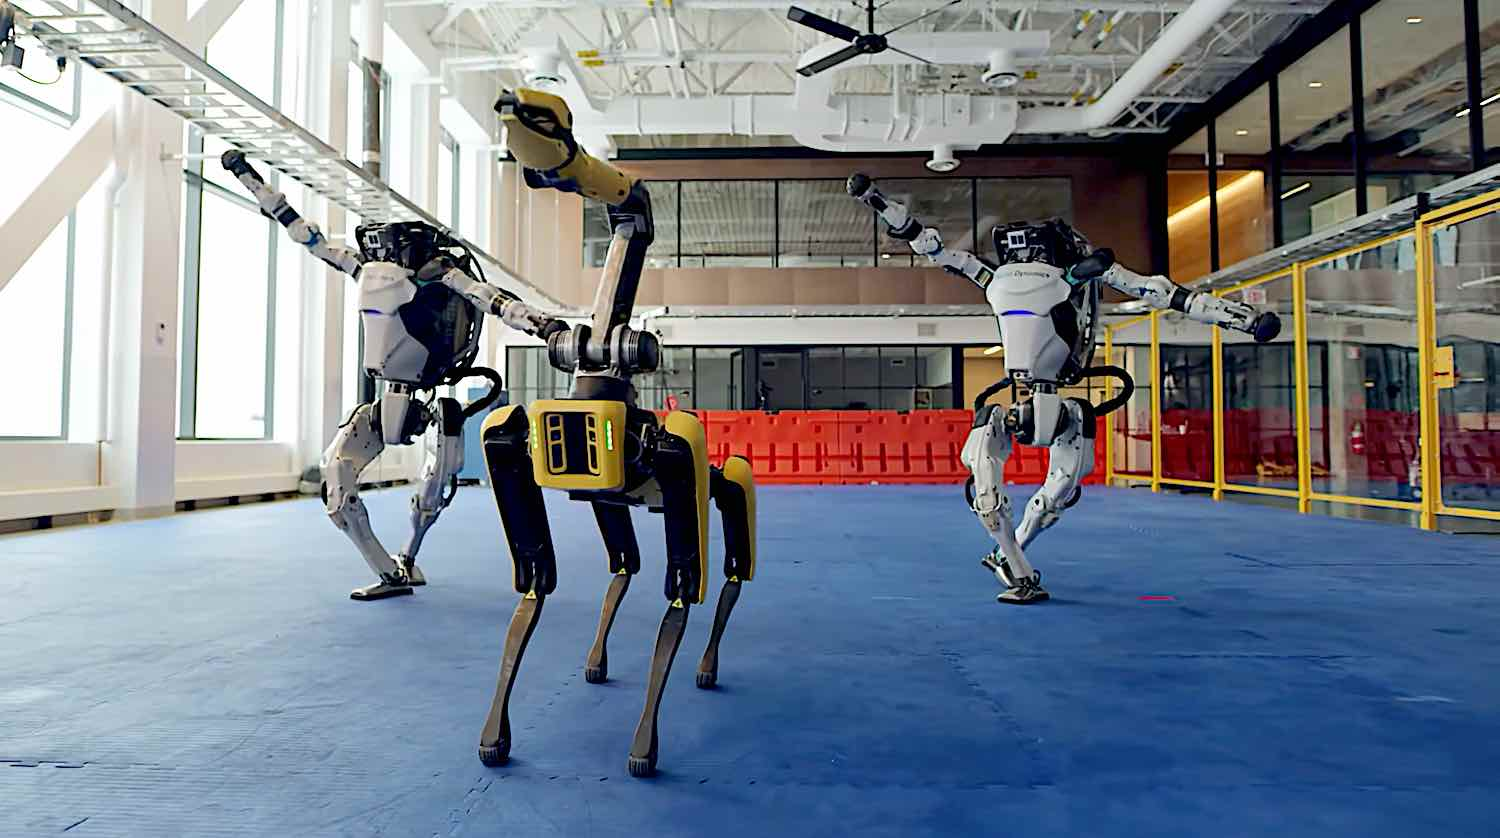 Happy 2021! Image by Boston Dynamics.